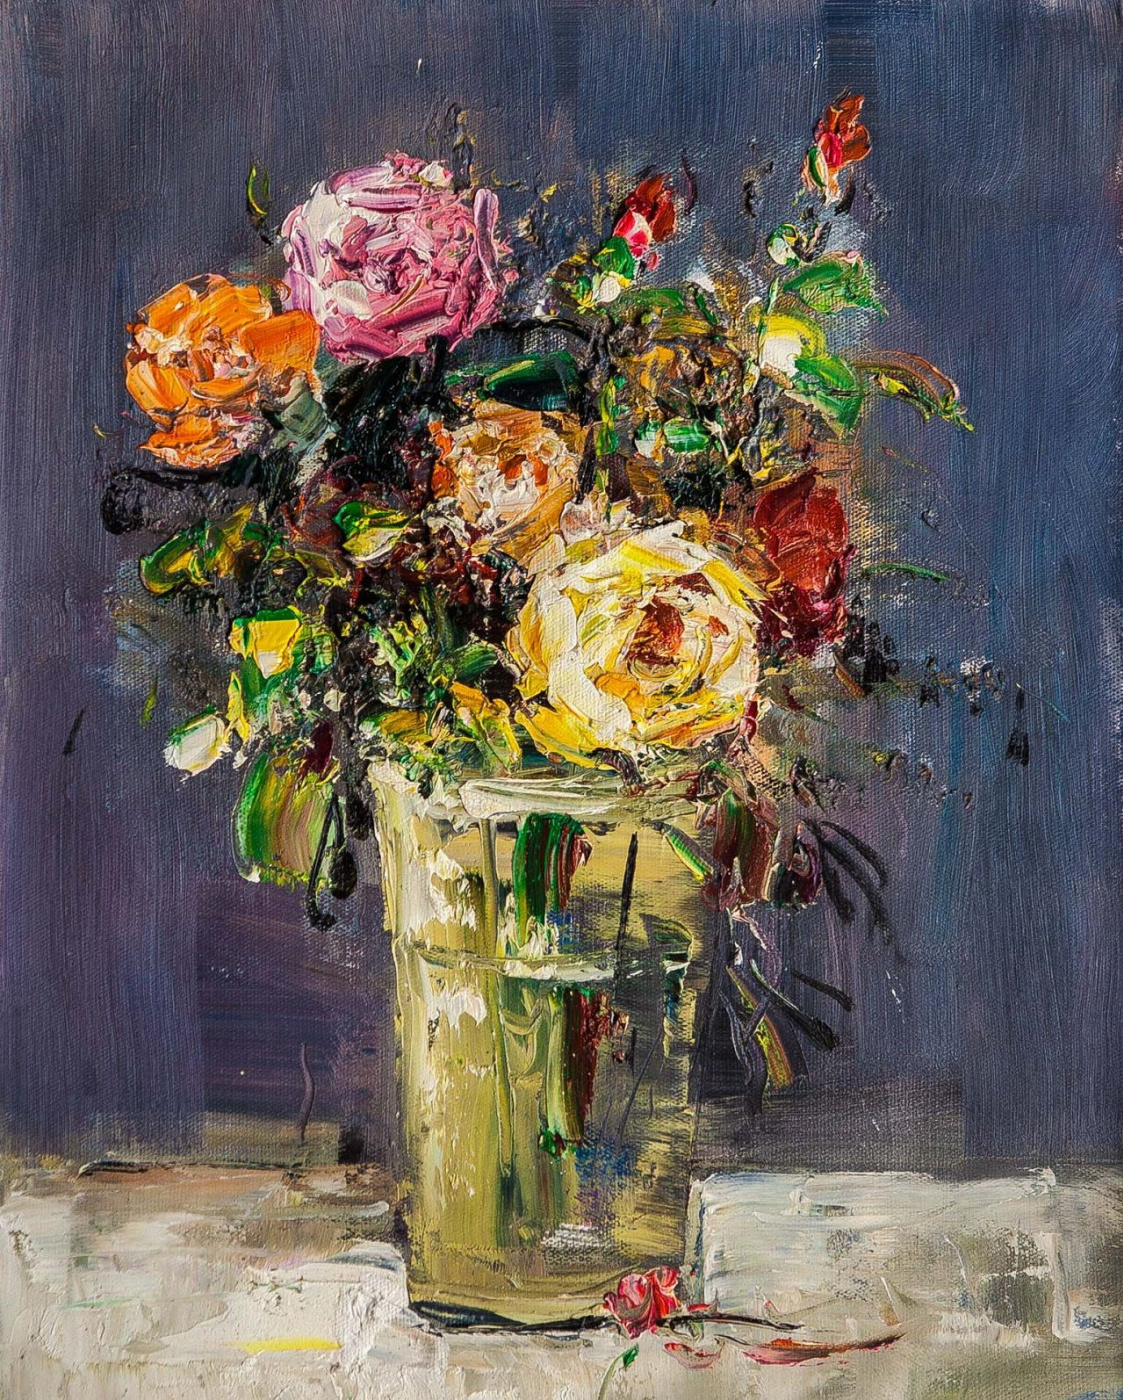 (no name). Bouquet of roses in a glass vase